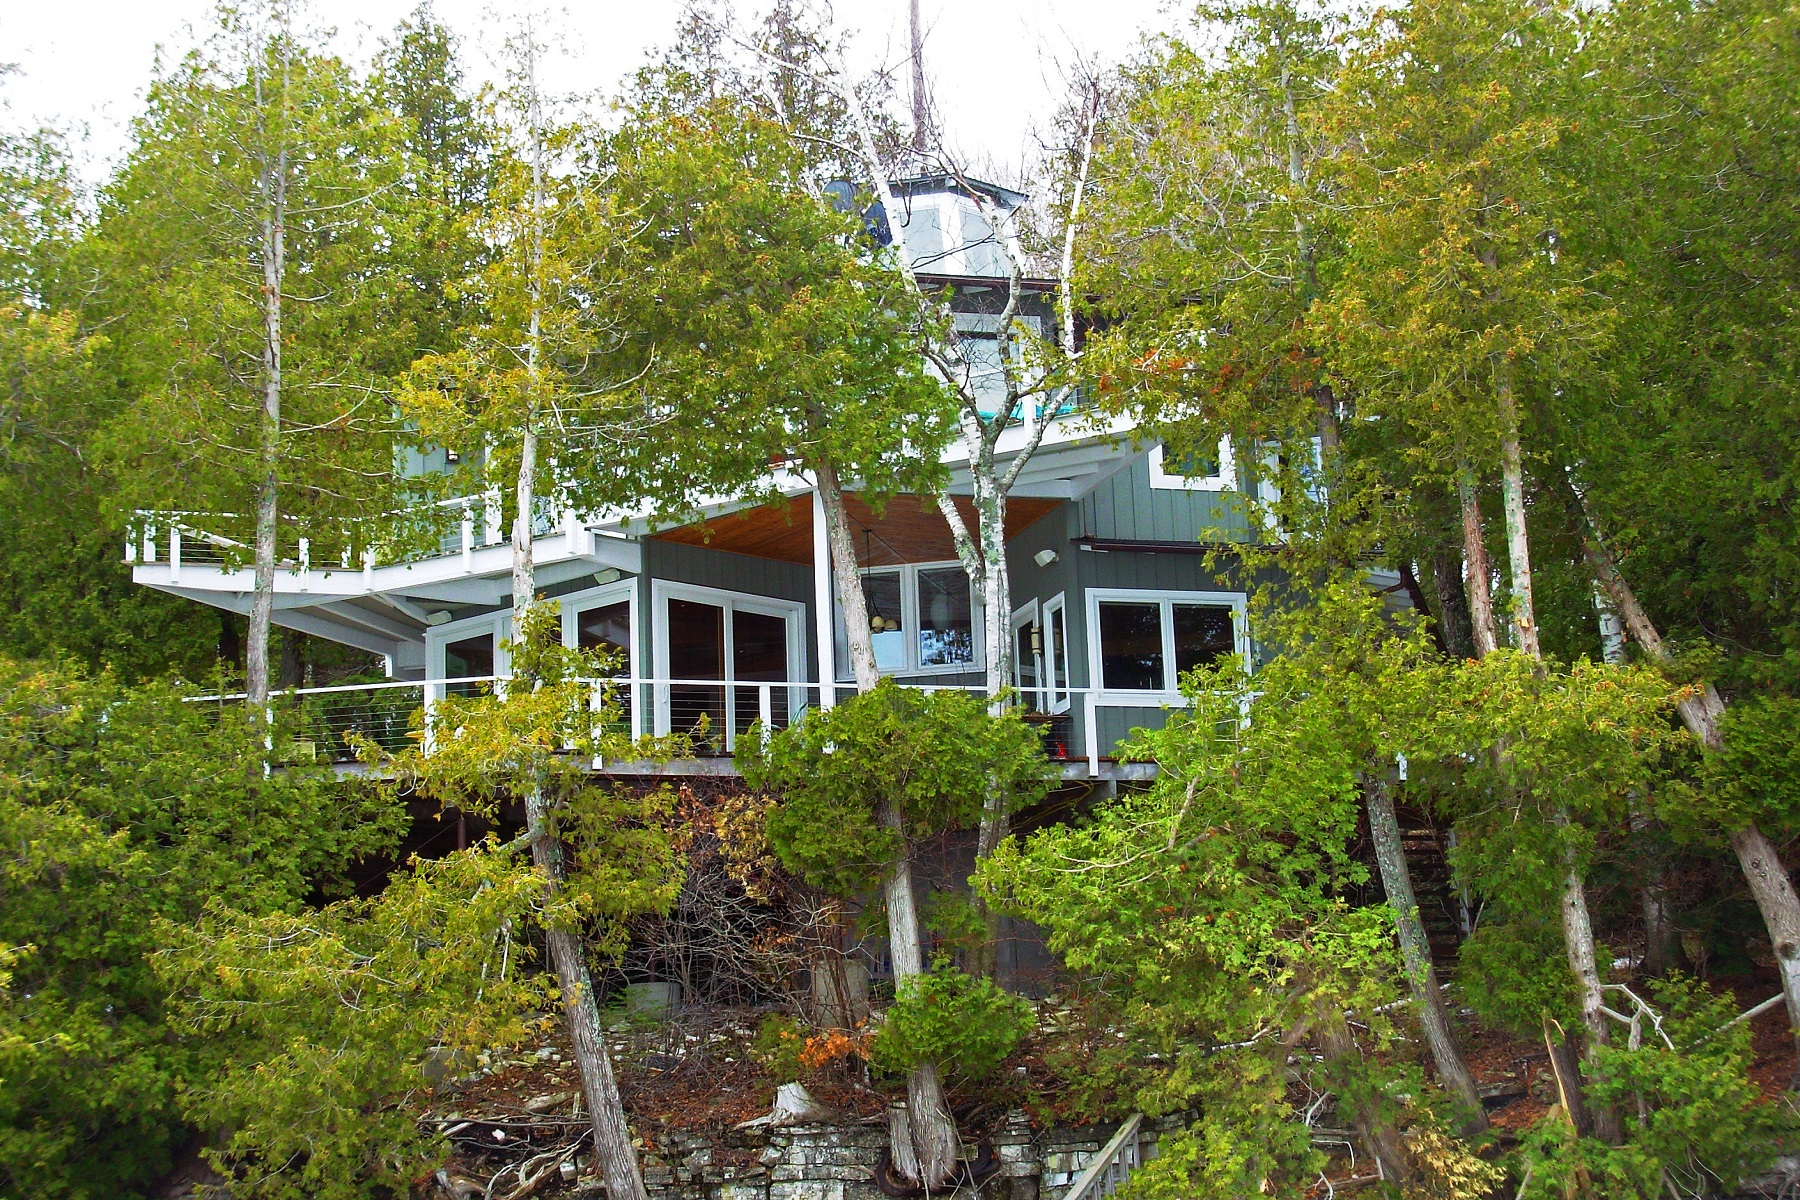 Single Family Homes for Sale at Door County Lakefront Gem 12676 Door Bluff Park Road Ellison Bay, Wisconsin 54210 United States